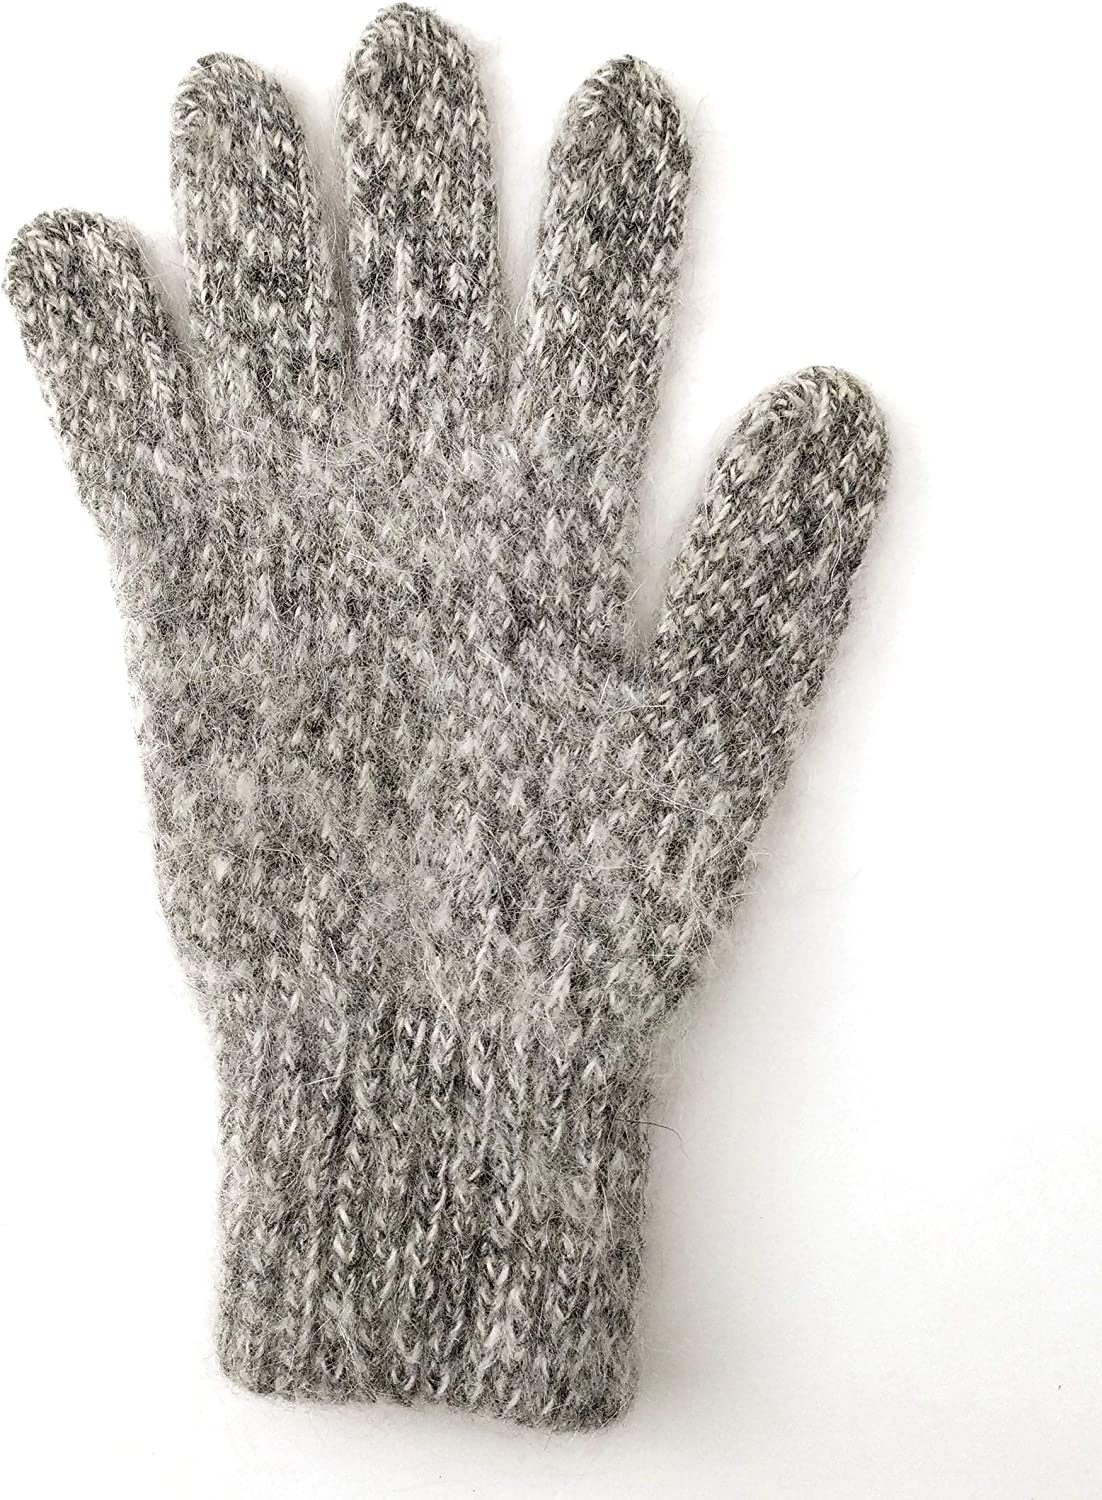 Tourmania Women's Wool Gloves for Cold Weather, Gray, Small / Medium